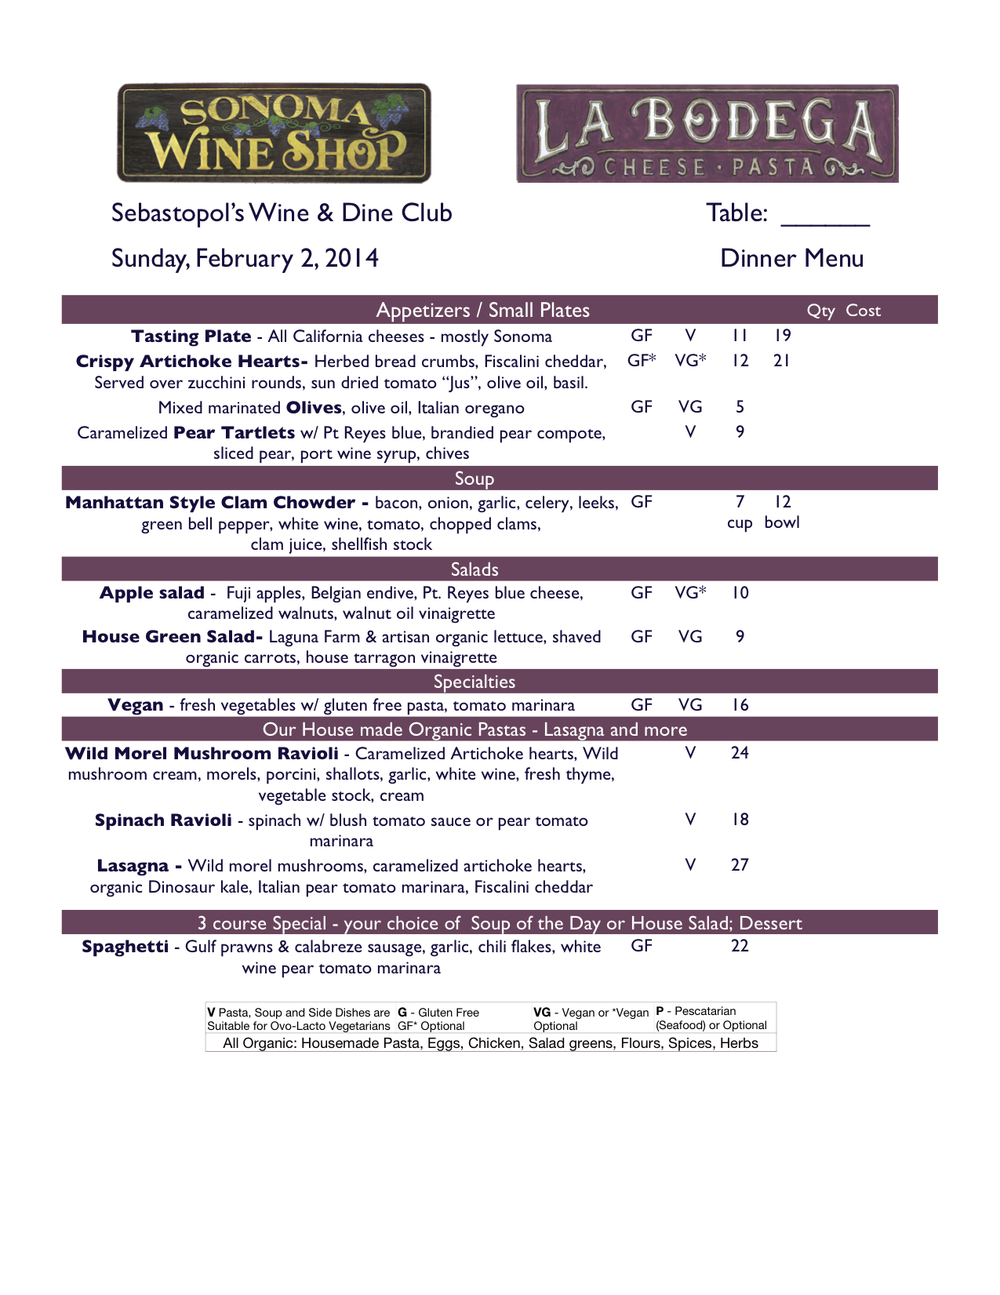 Sample regular menu - Click for full size